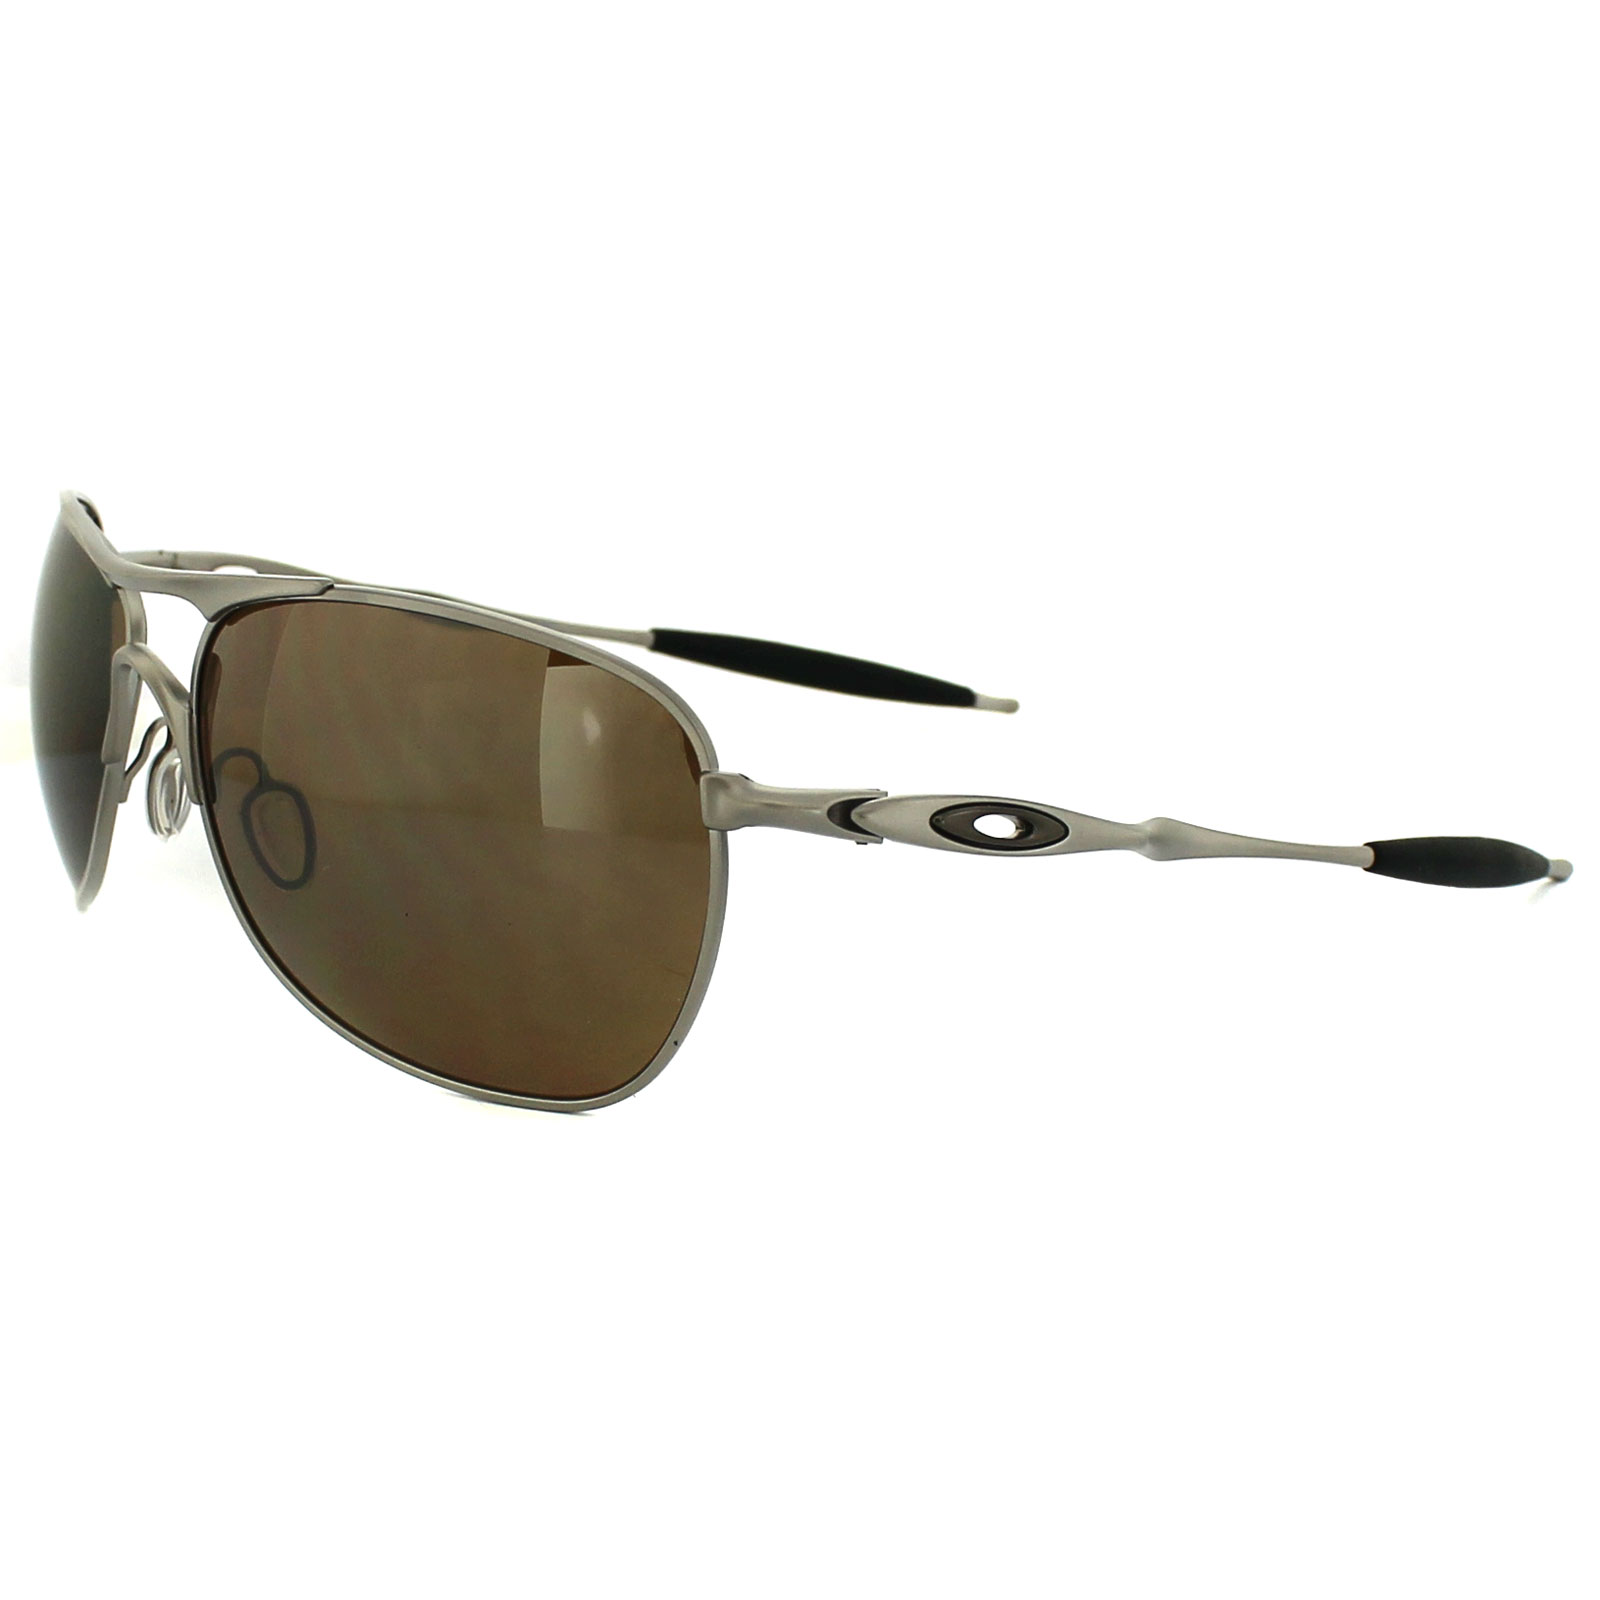 oakley polarized titanium crosshair sunglasses  oakley sunglasses ti crosshair titanium tungsten iridium polarized oo6014 01